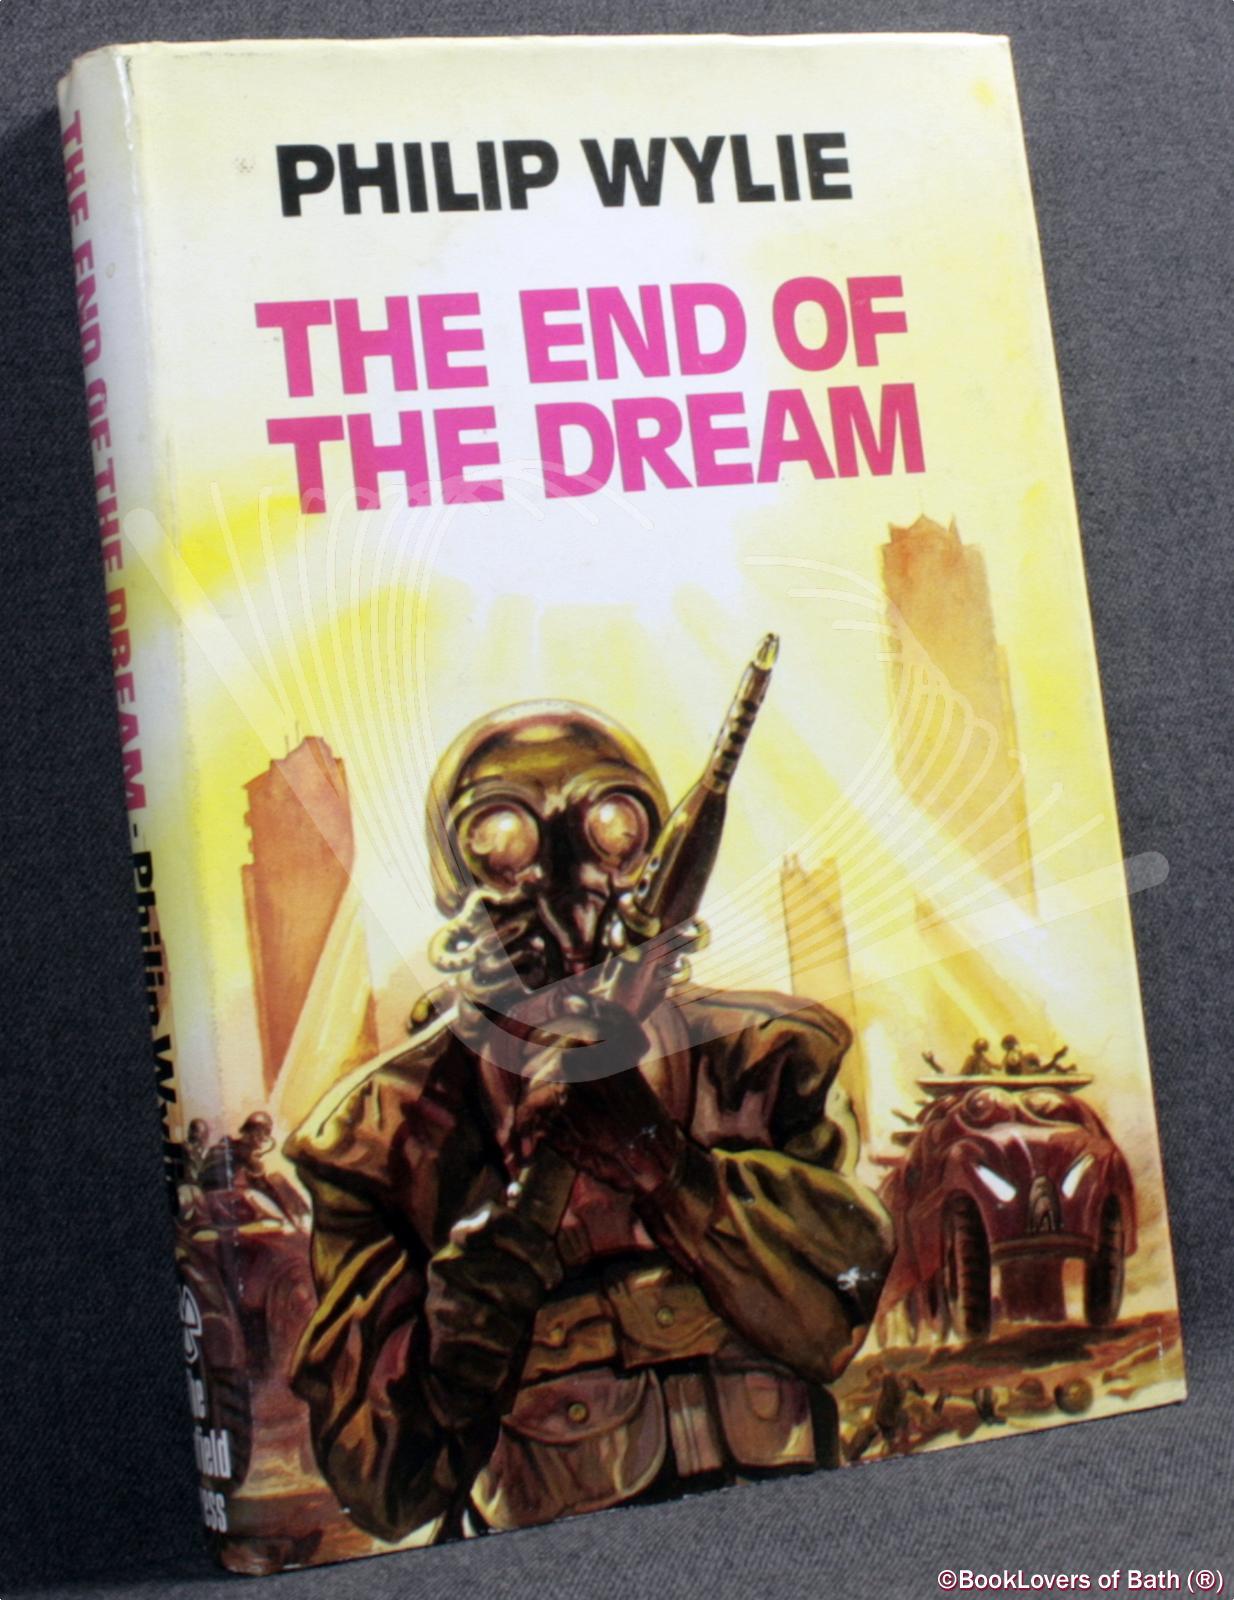 The End of the Dream - Philip Wylie